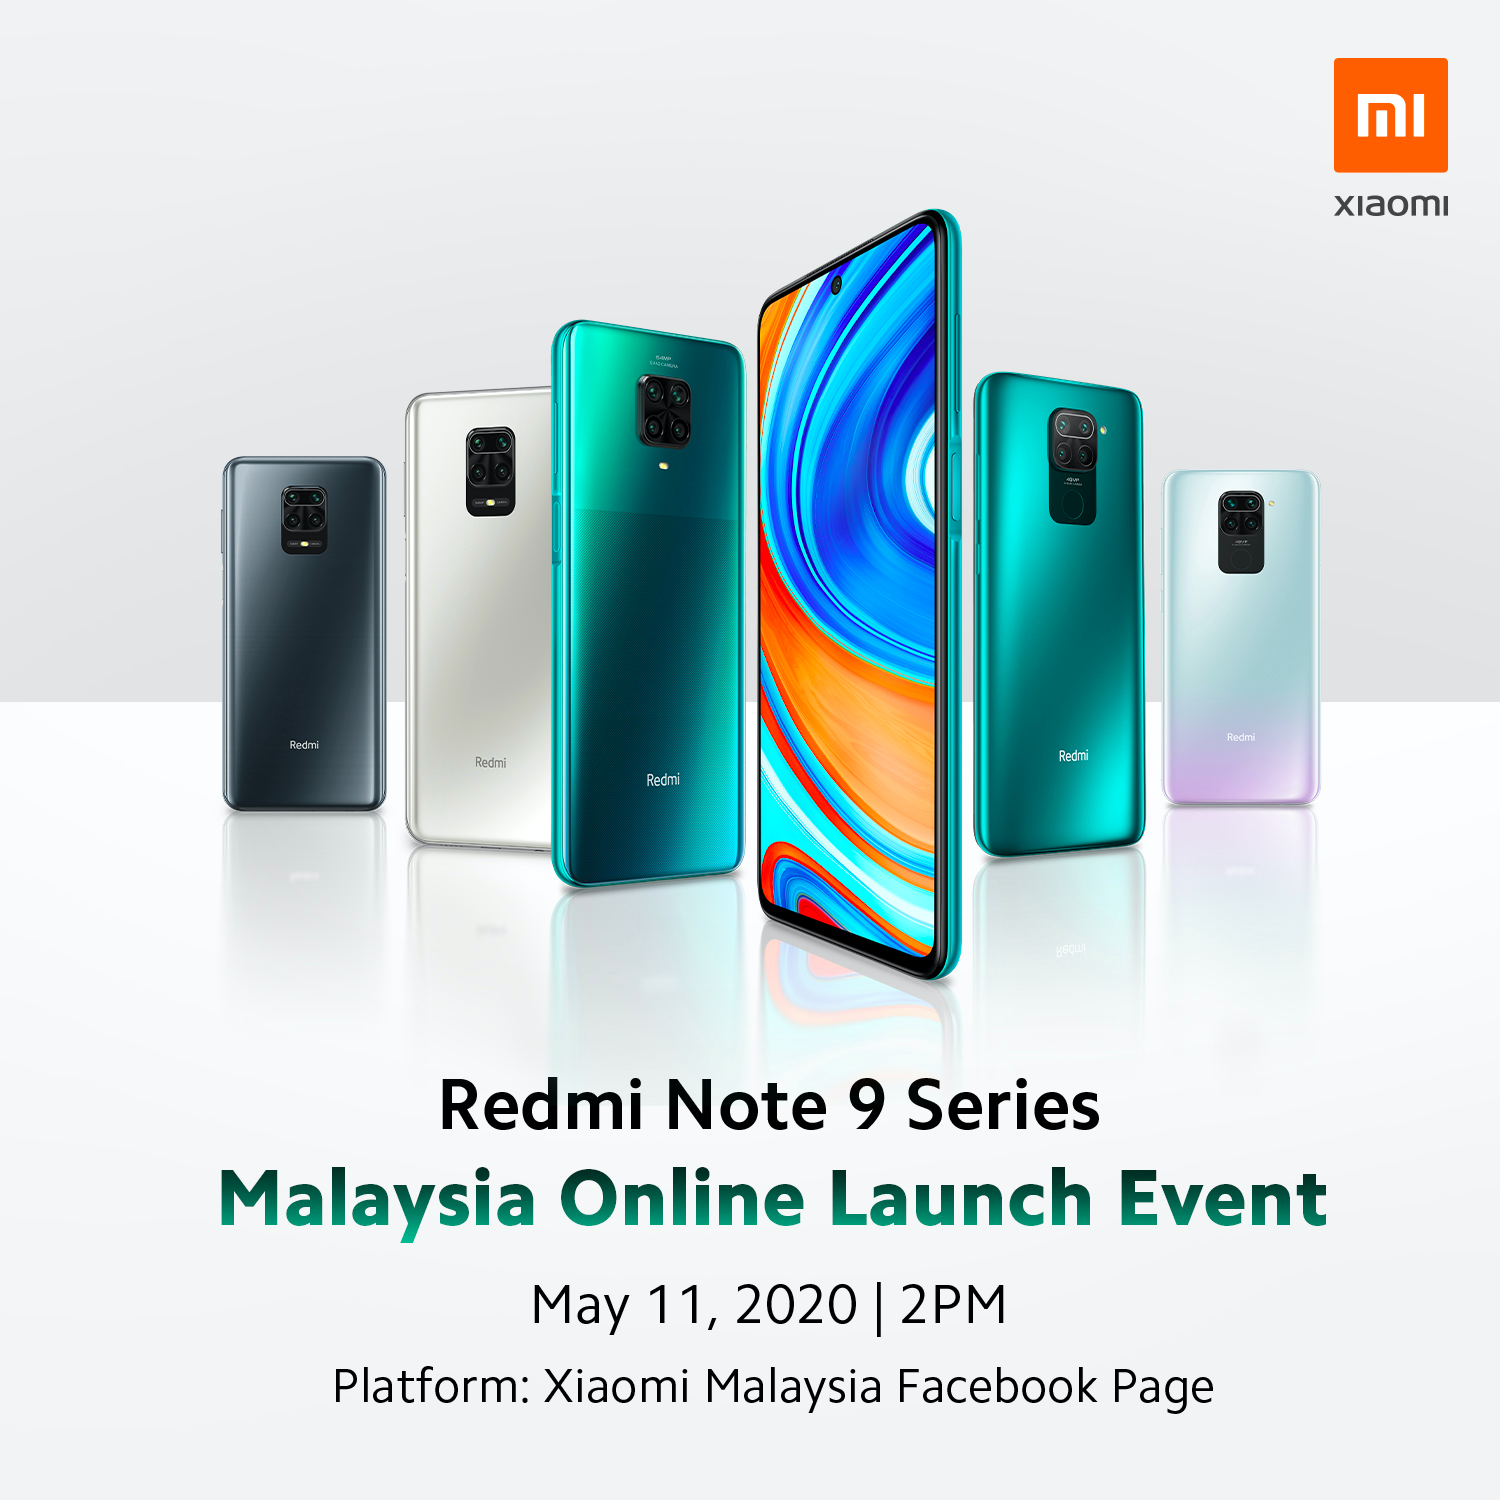 Redmi Note 9 Series All Set To Launch In Malaysia Next Week Liveatpc Com Home Of Pc Com Malaysia